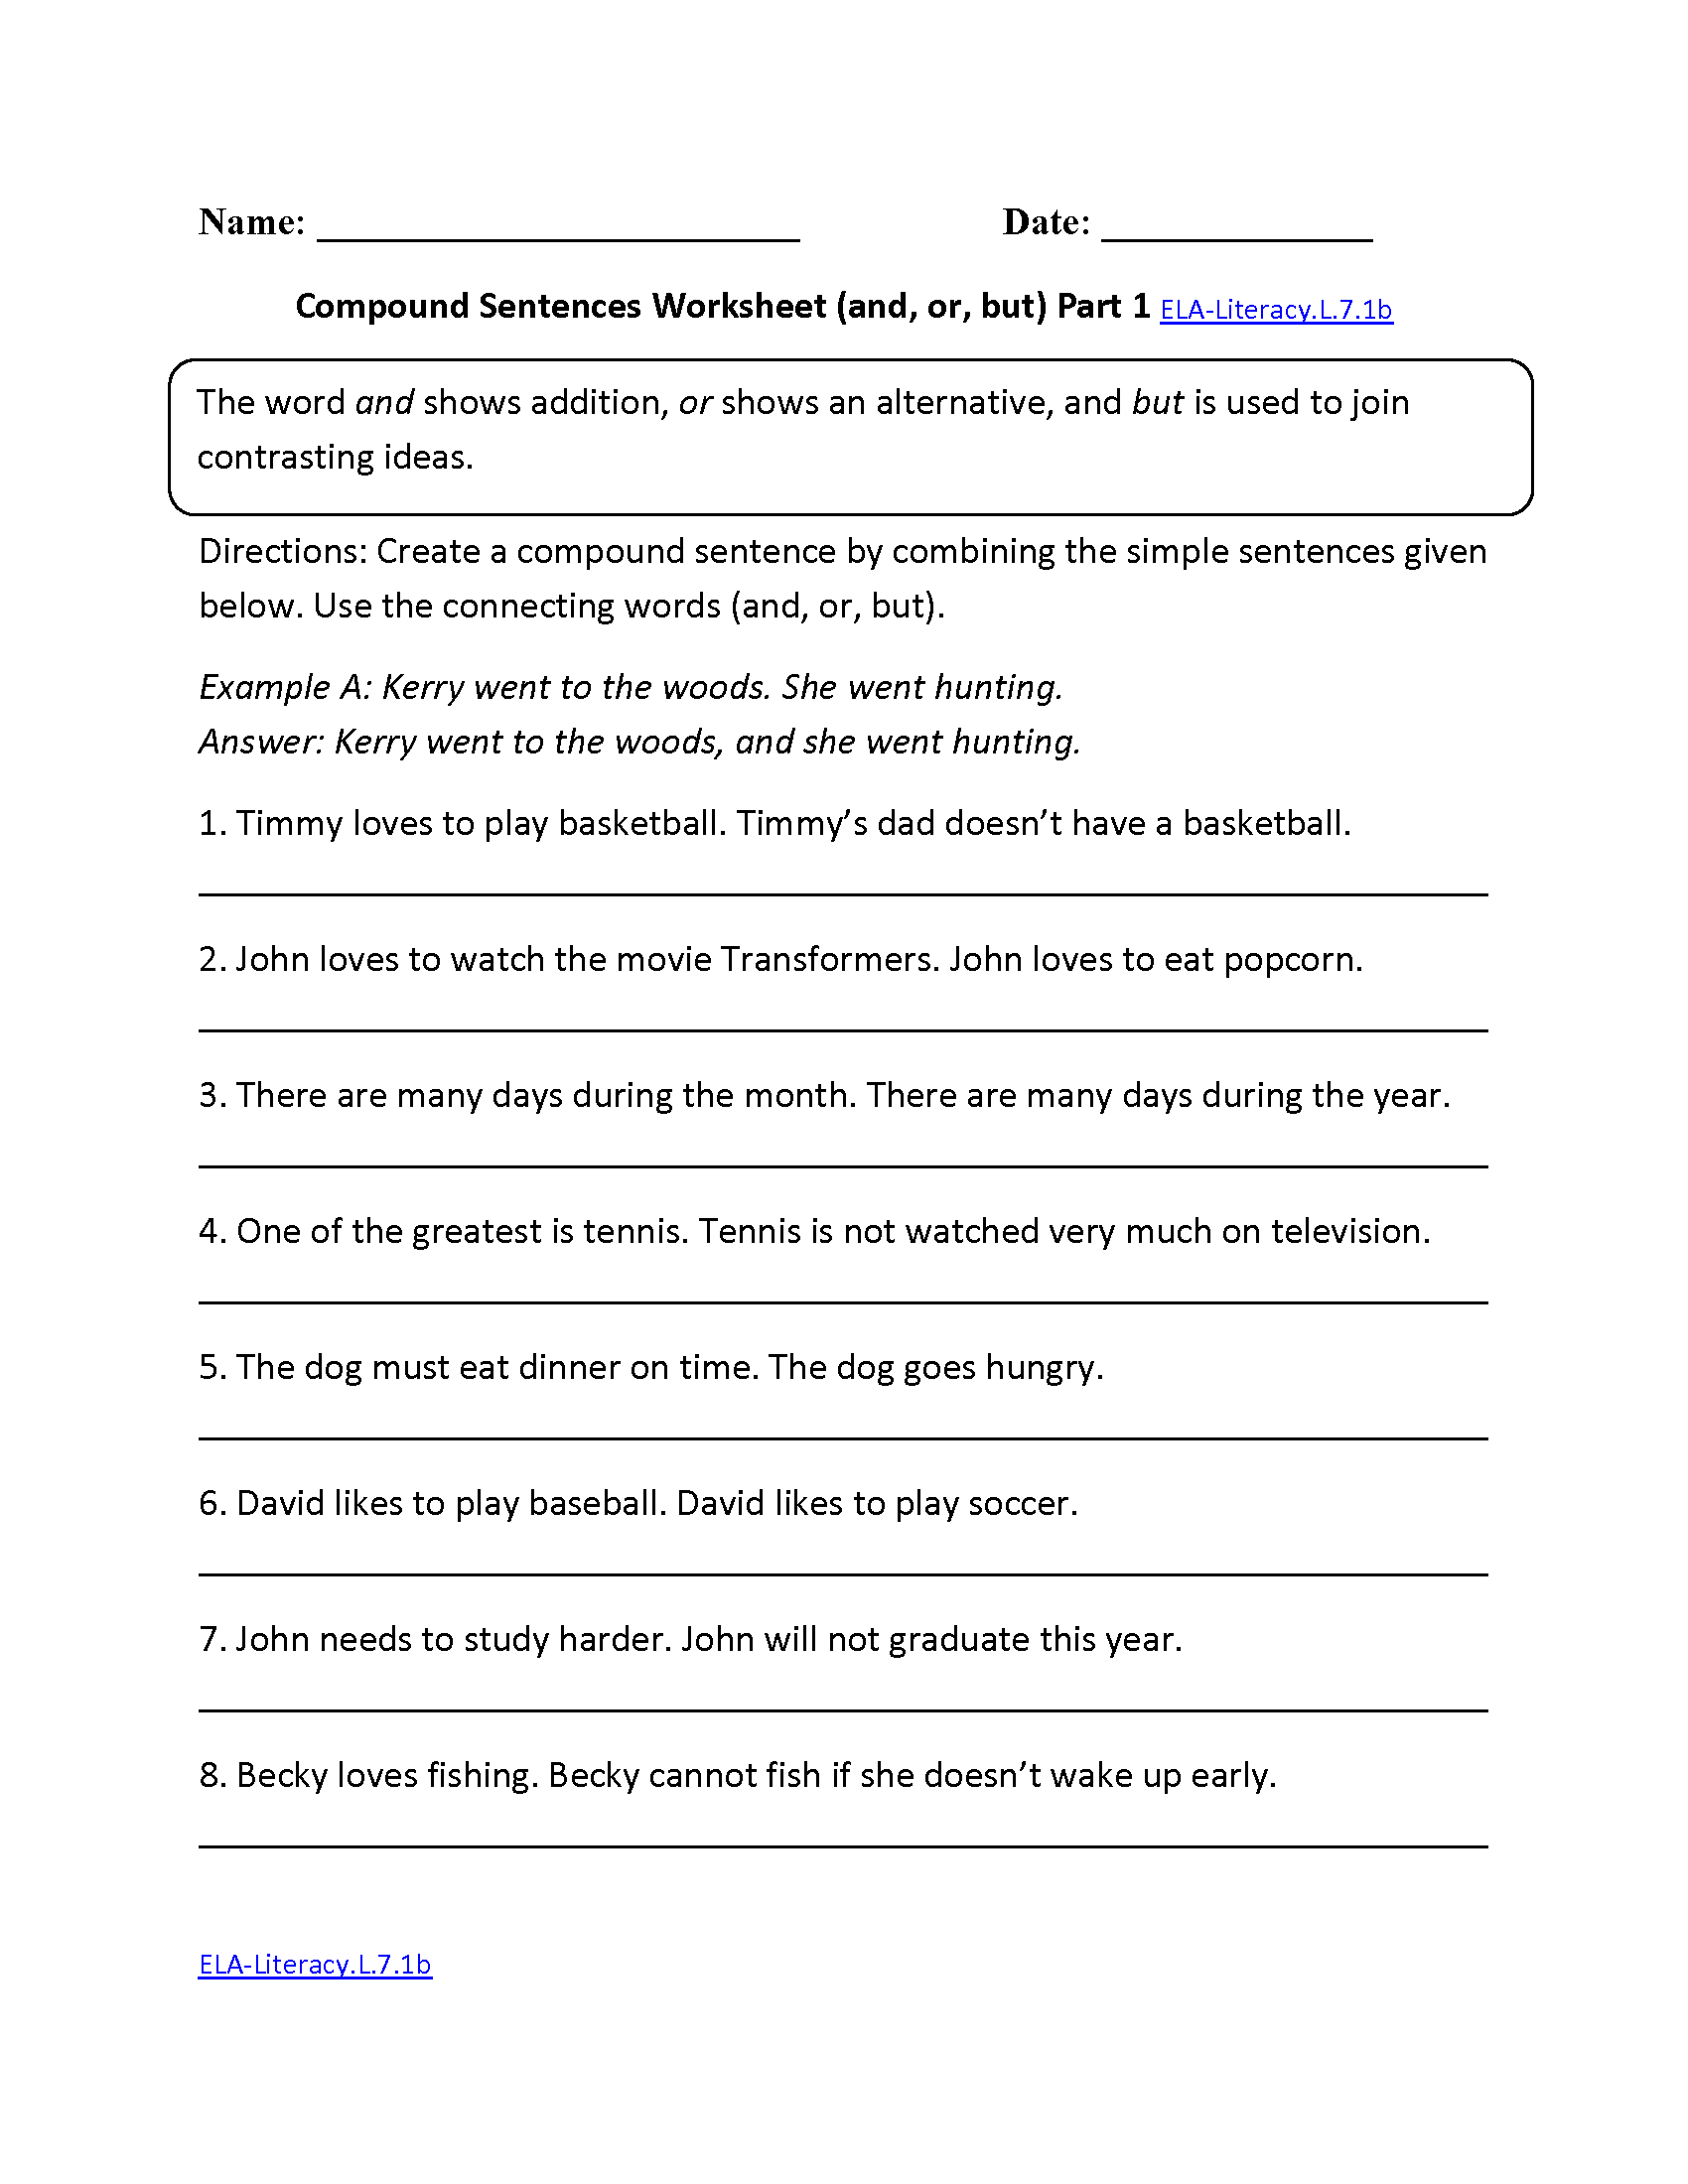 Worksheets Common Core Worksheets 7th Grade 7th grade common core language worksheets compound sentences worksheet ela literacy l 7 1b worksheet